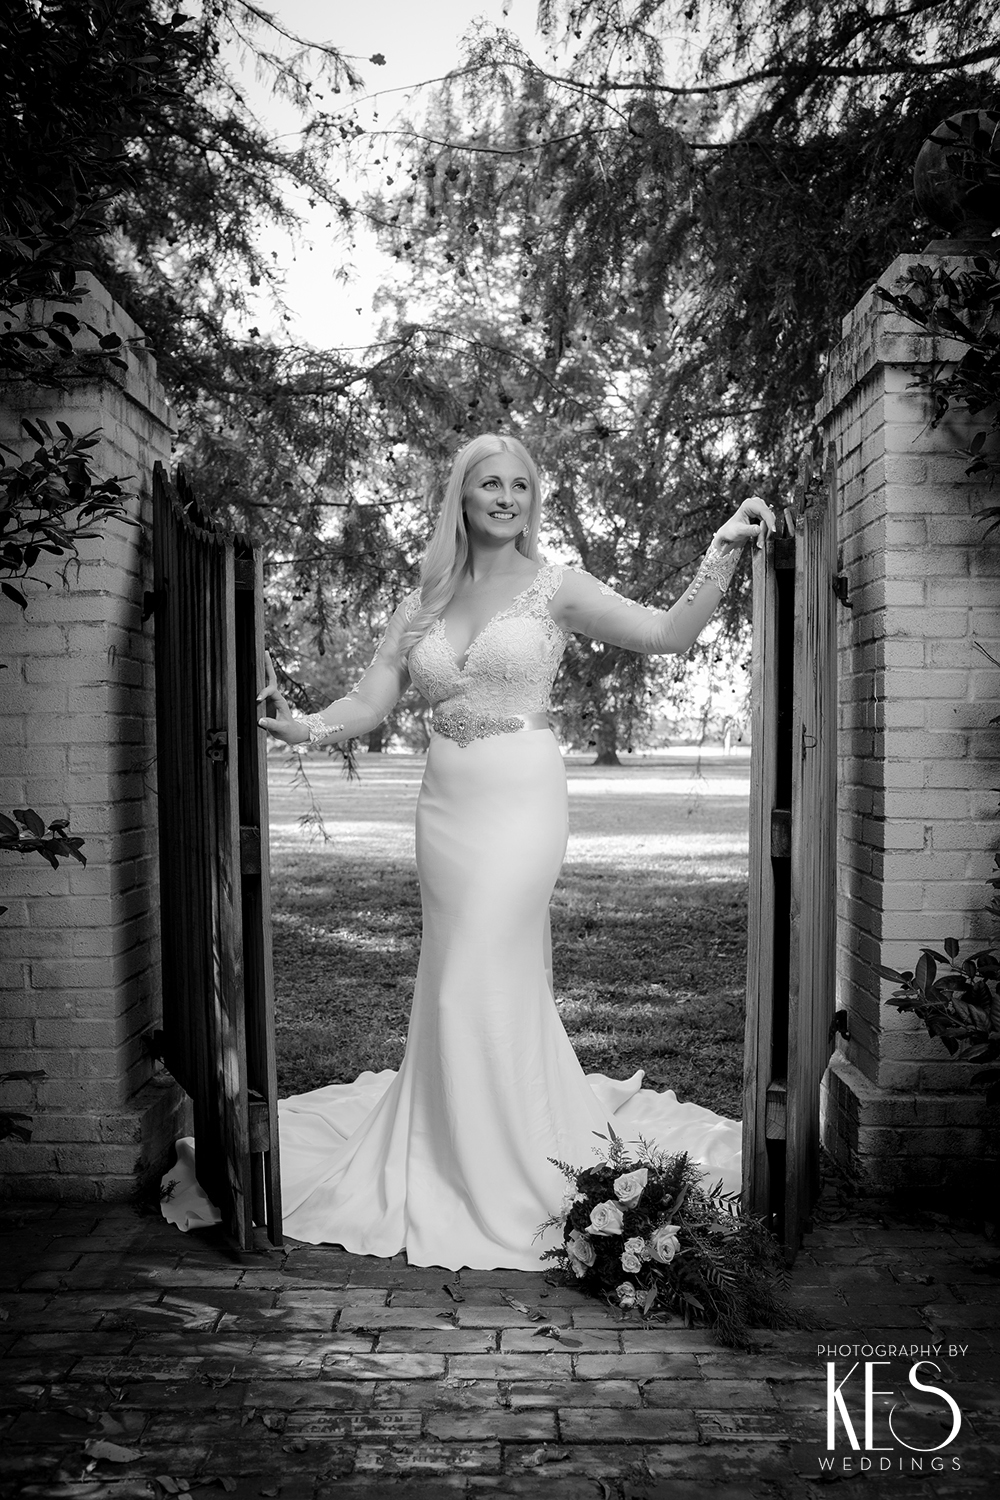 Marlsgate_Bridals_KES_Weddings_9.JPG